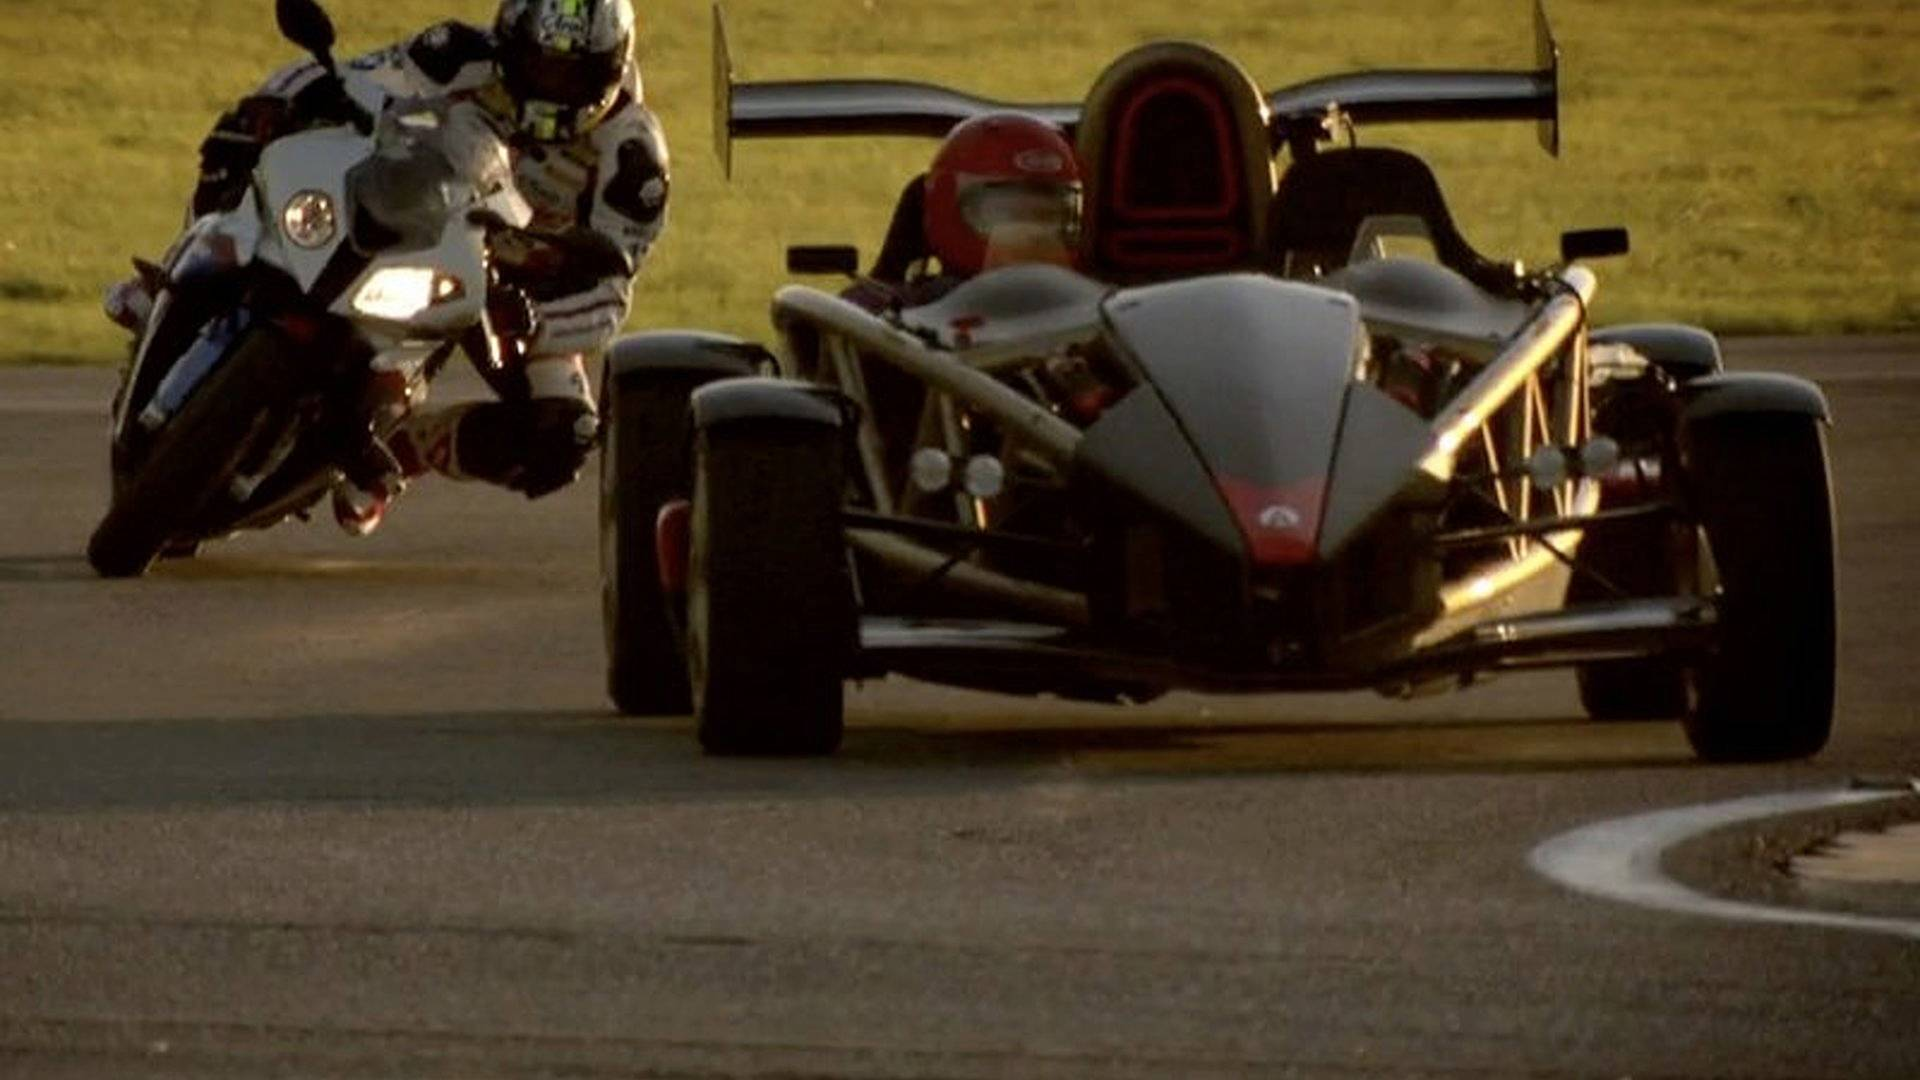 Top Gear Pits Bmw S1000rr Vs Ariel Atom V8